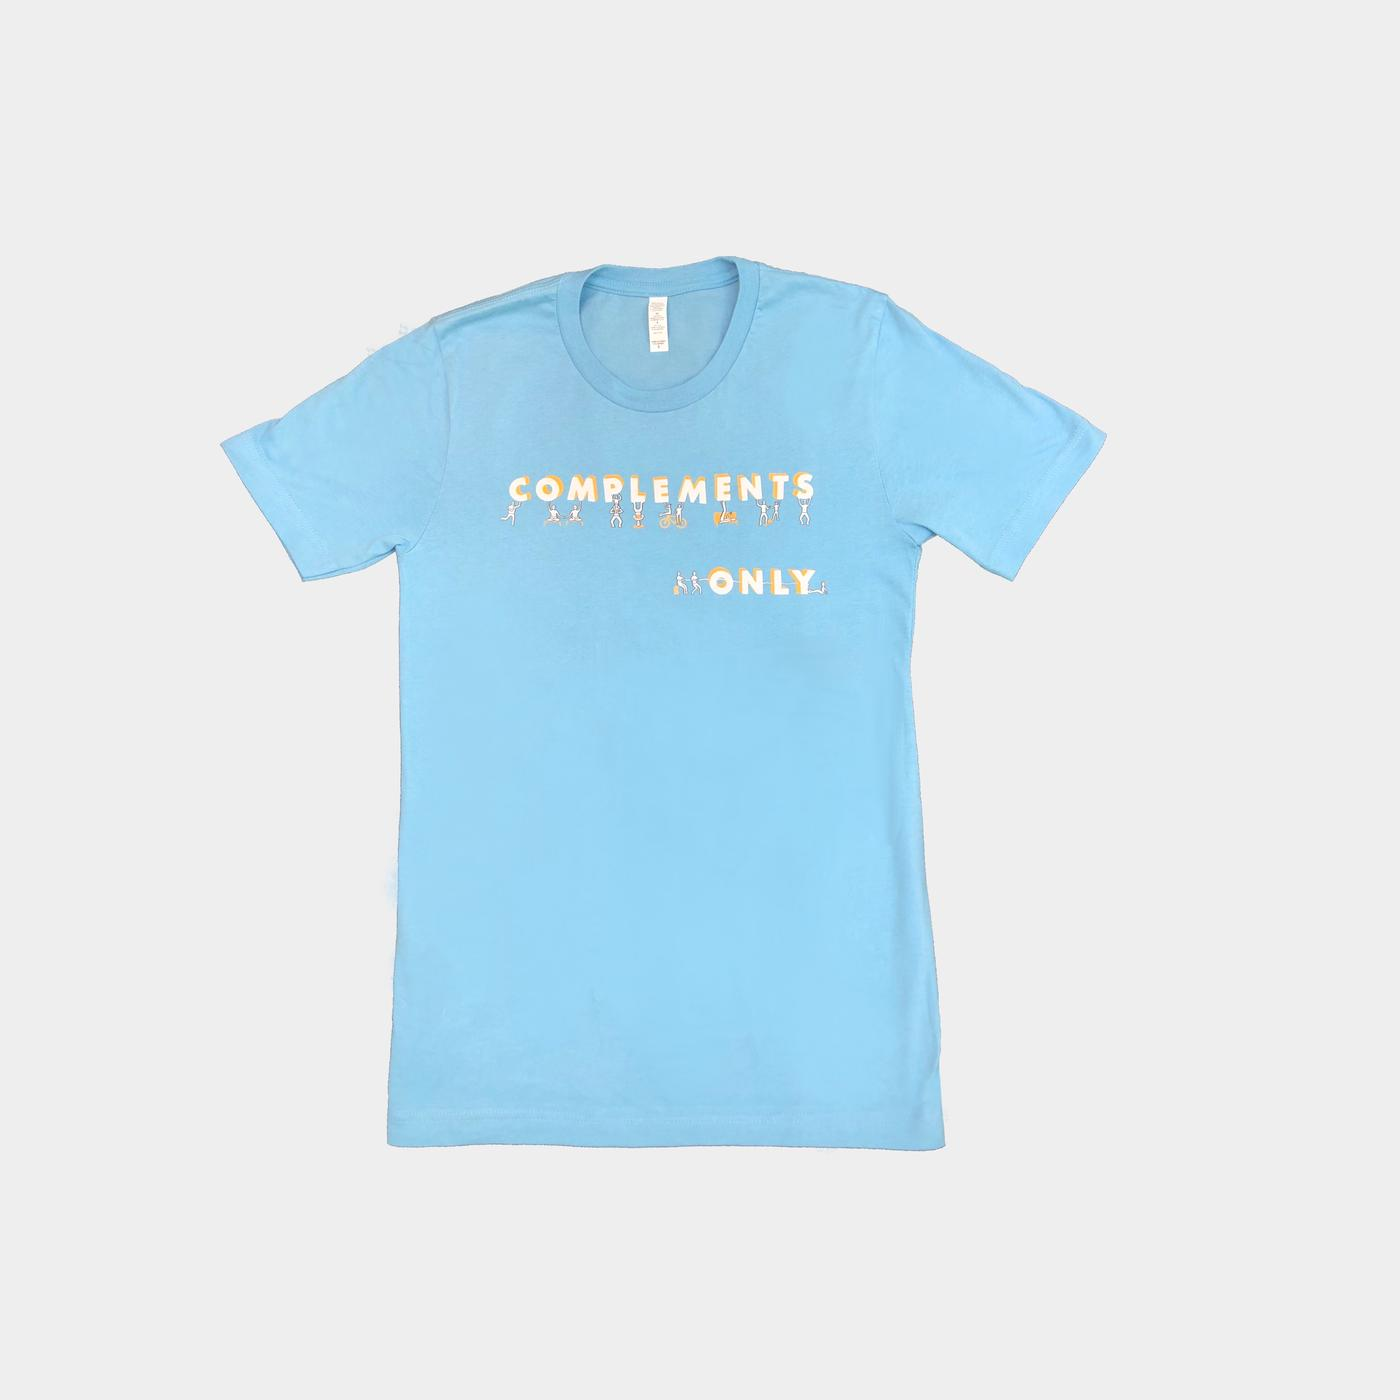 complements only t-shirt